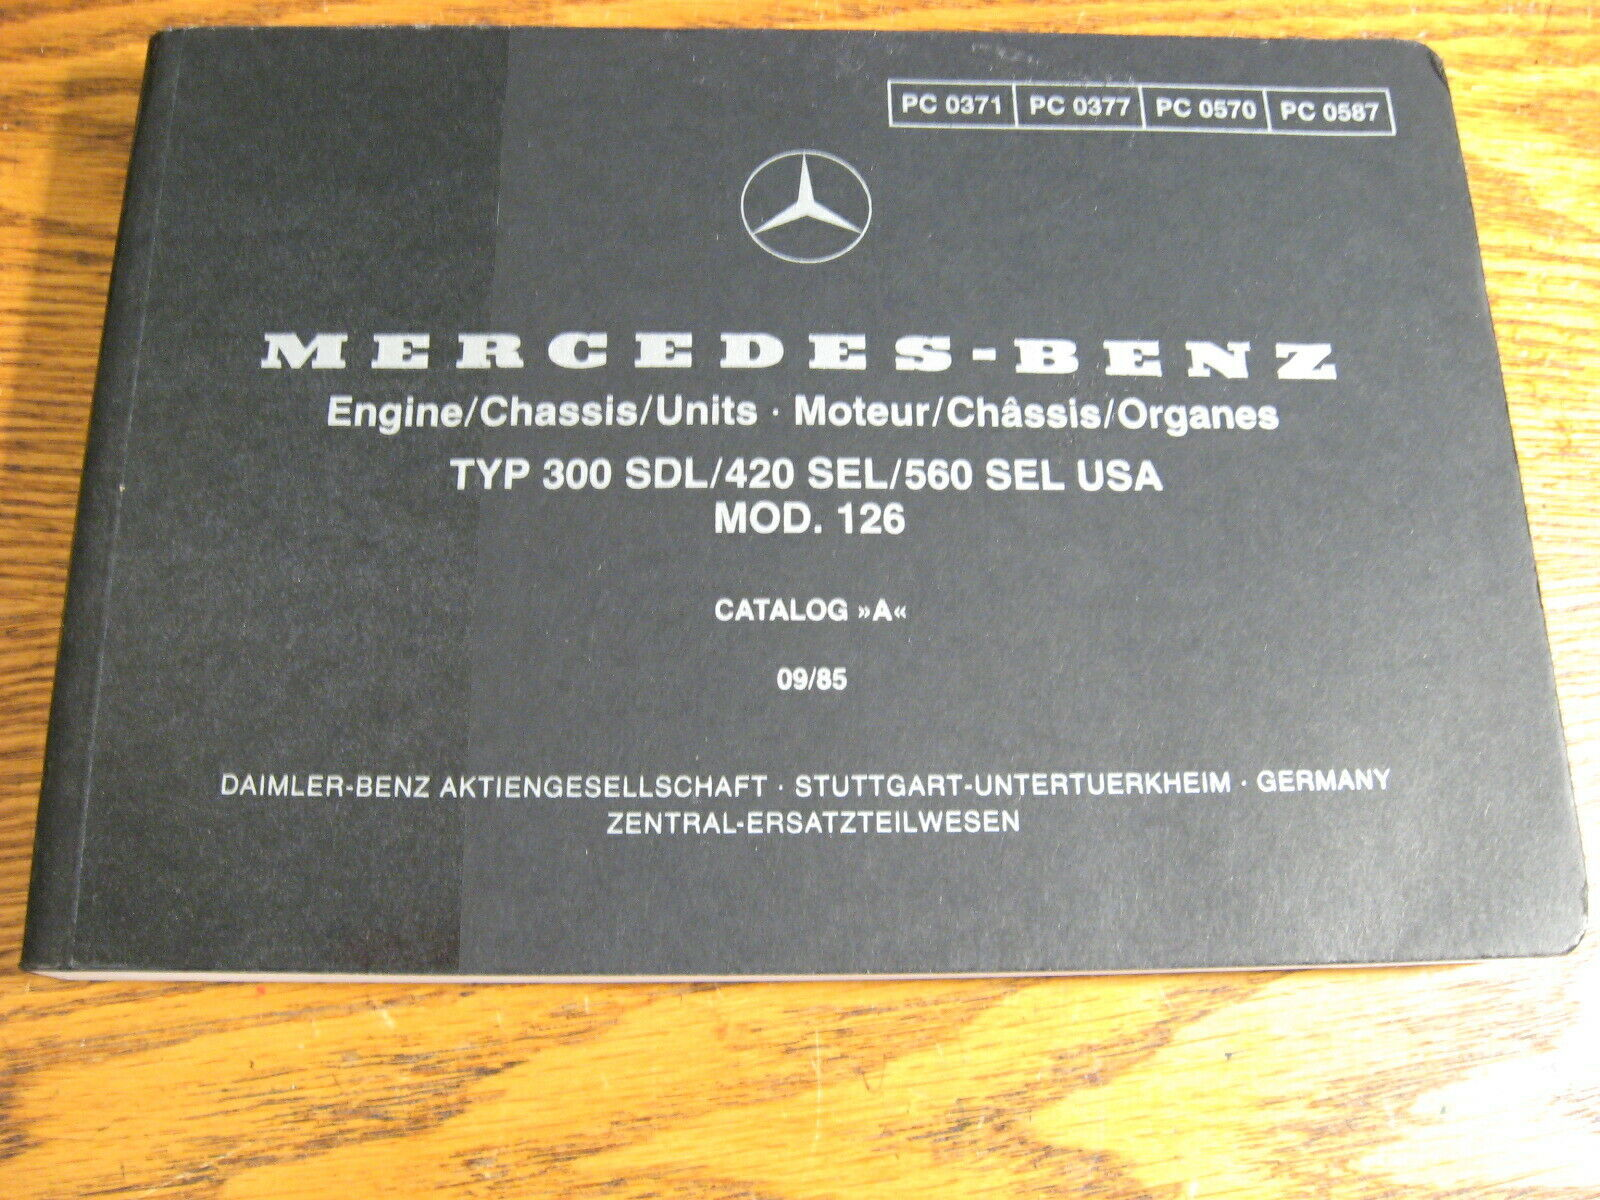 Mercedes-Benz Type 300 SDL 420 SEL 560 SEL Parts Catalog Manual 1986 - 1991 w126